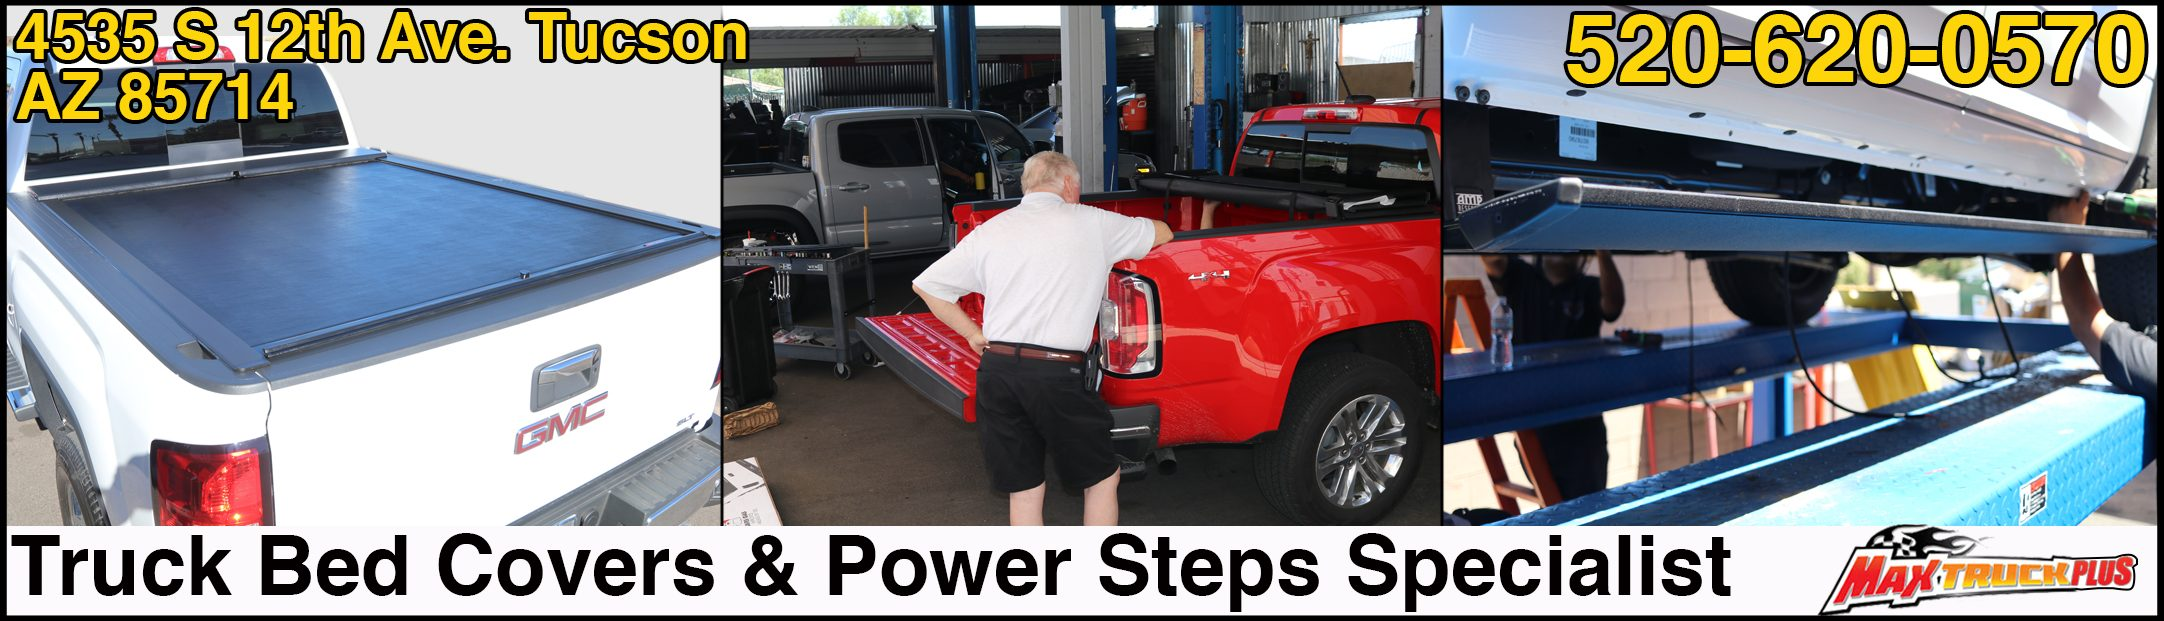 truck bed covers and running boards tucson az